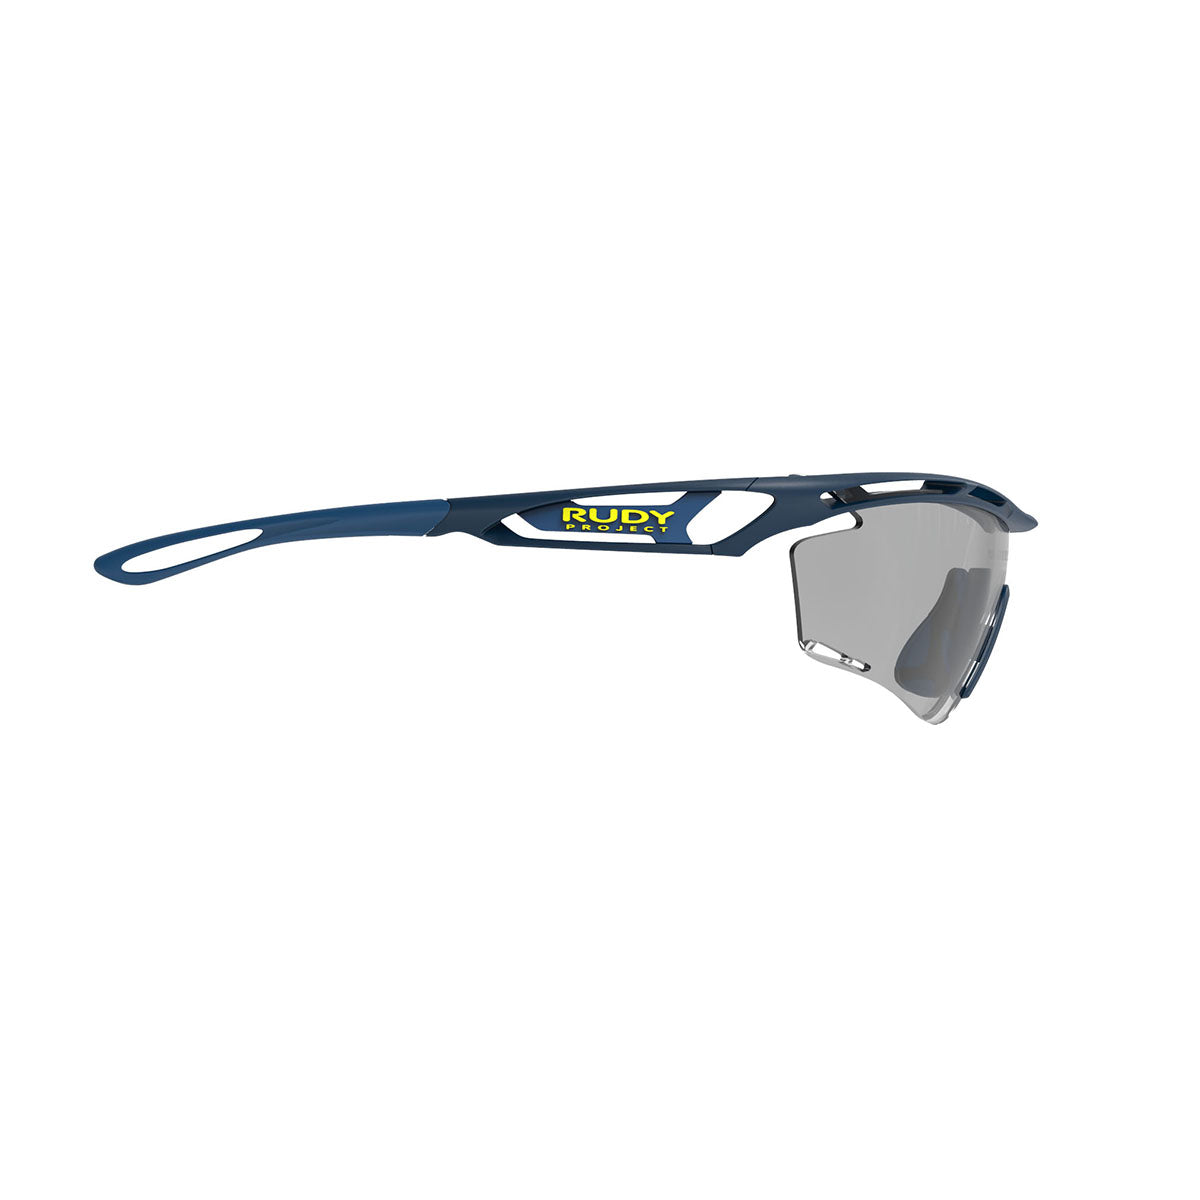 Rudy Project - Tralyx - frame color: Blue Navy Matte - lens color: ImpactX-2 Photochromic Clear to Black - photo angle: Side Variant Hover Image